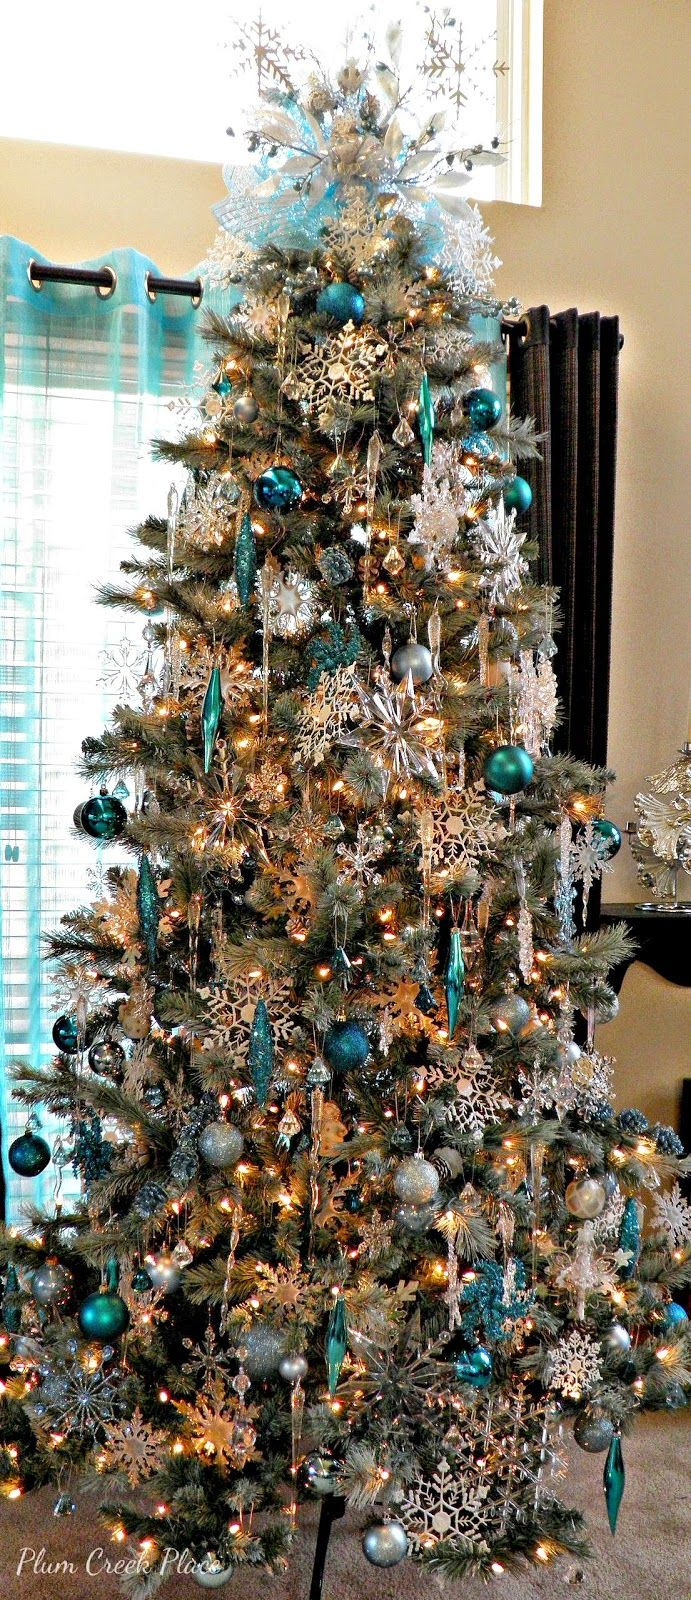 Plum Creek Place: Winterland Snowflakes #Christmas #tree #diy